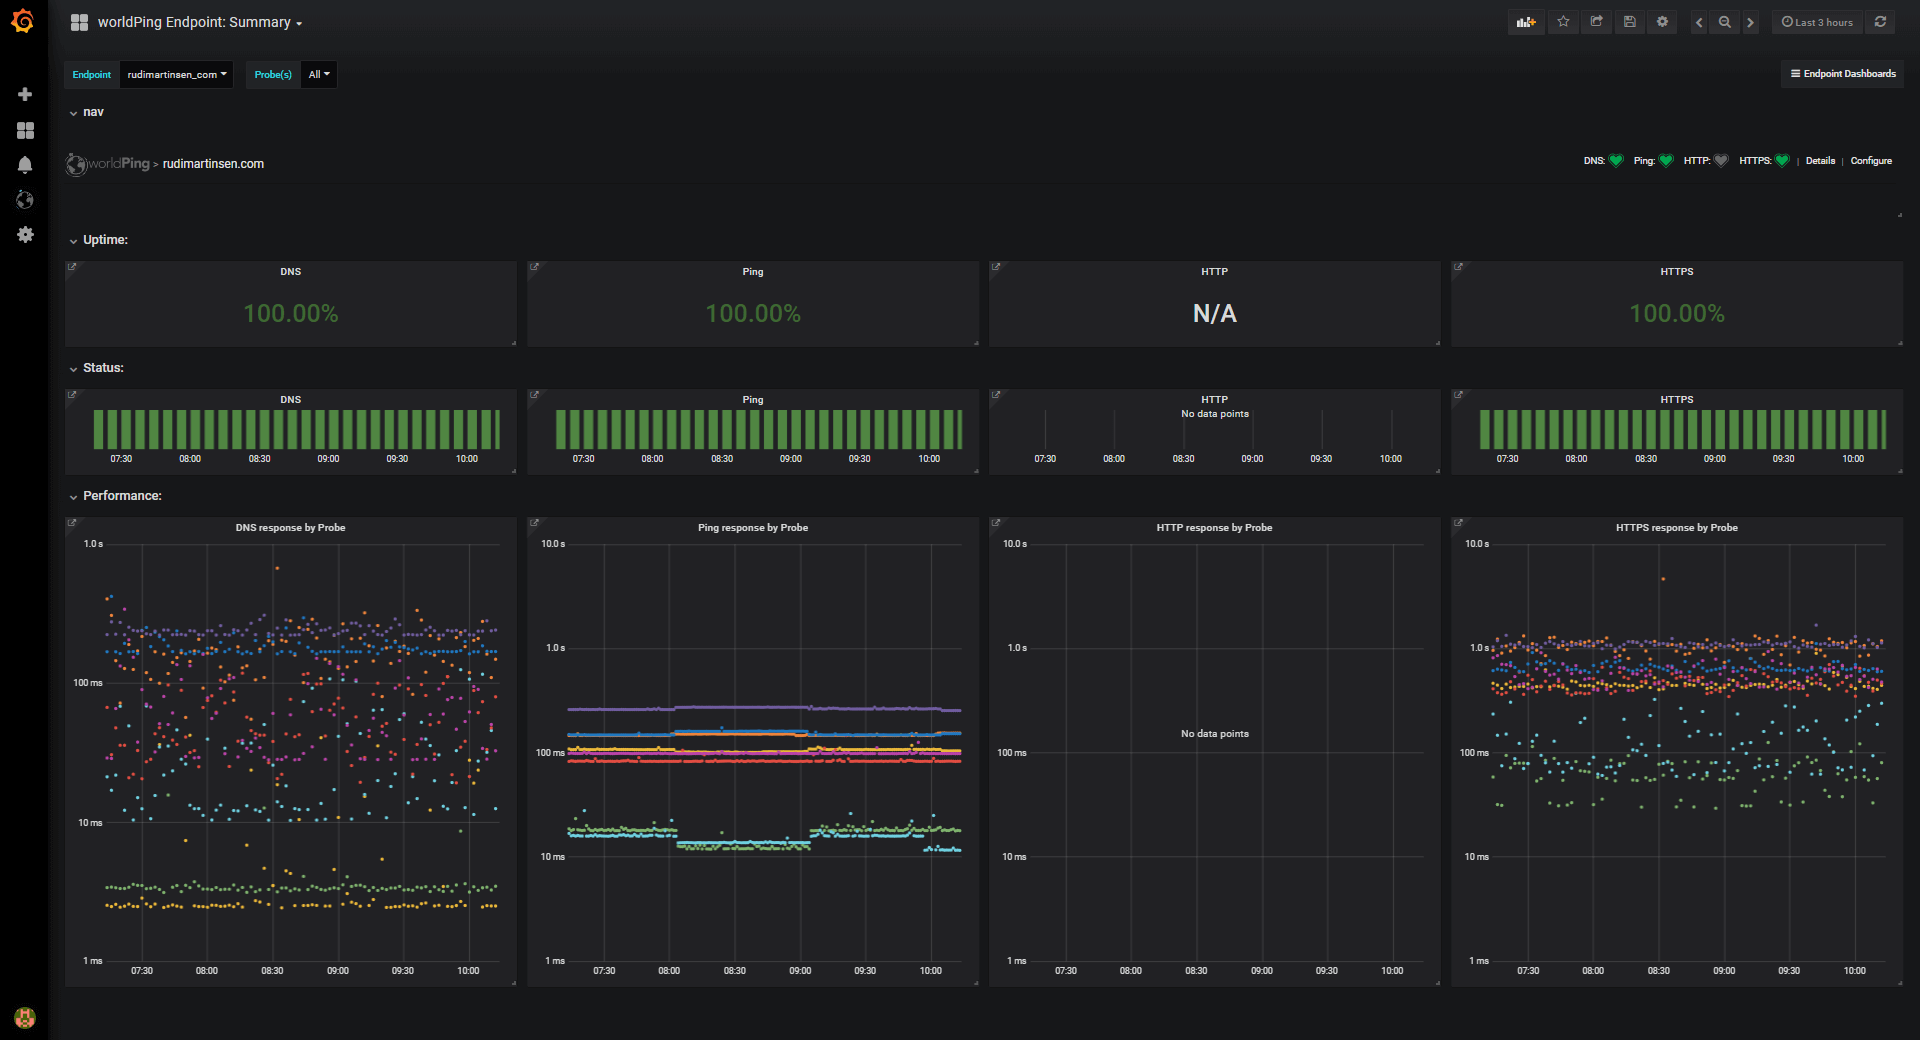 Monitoring url endpoints with Grafana, Azure and more